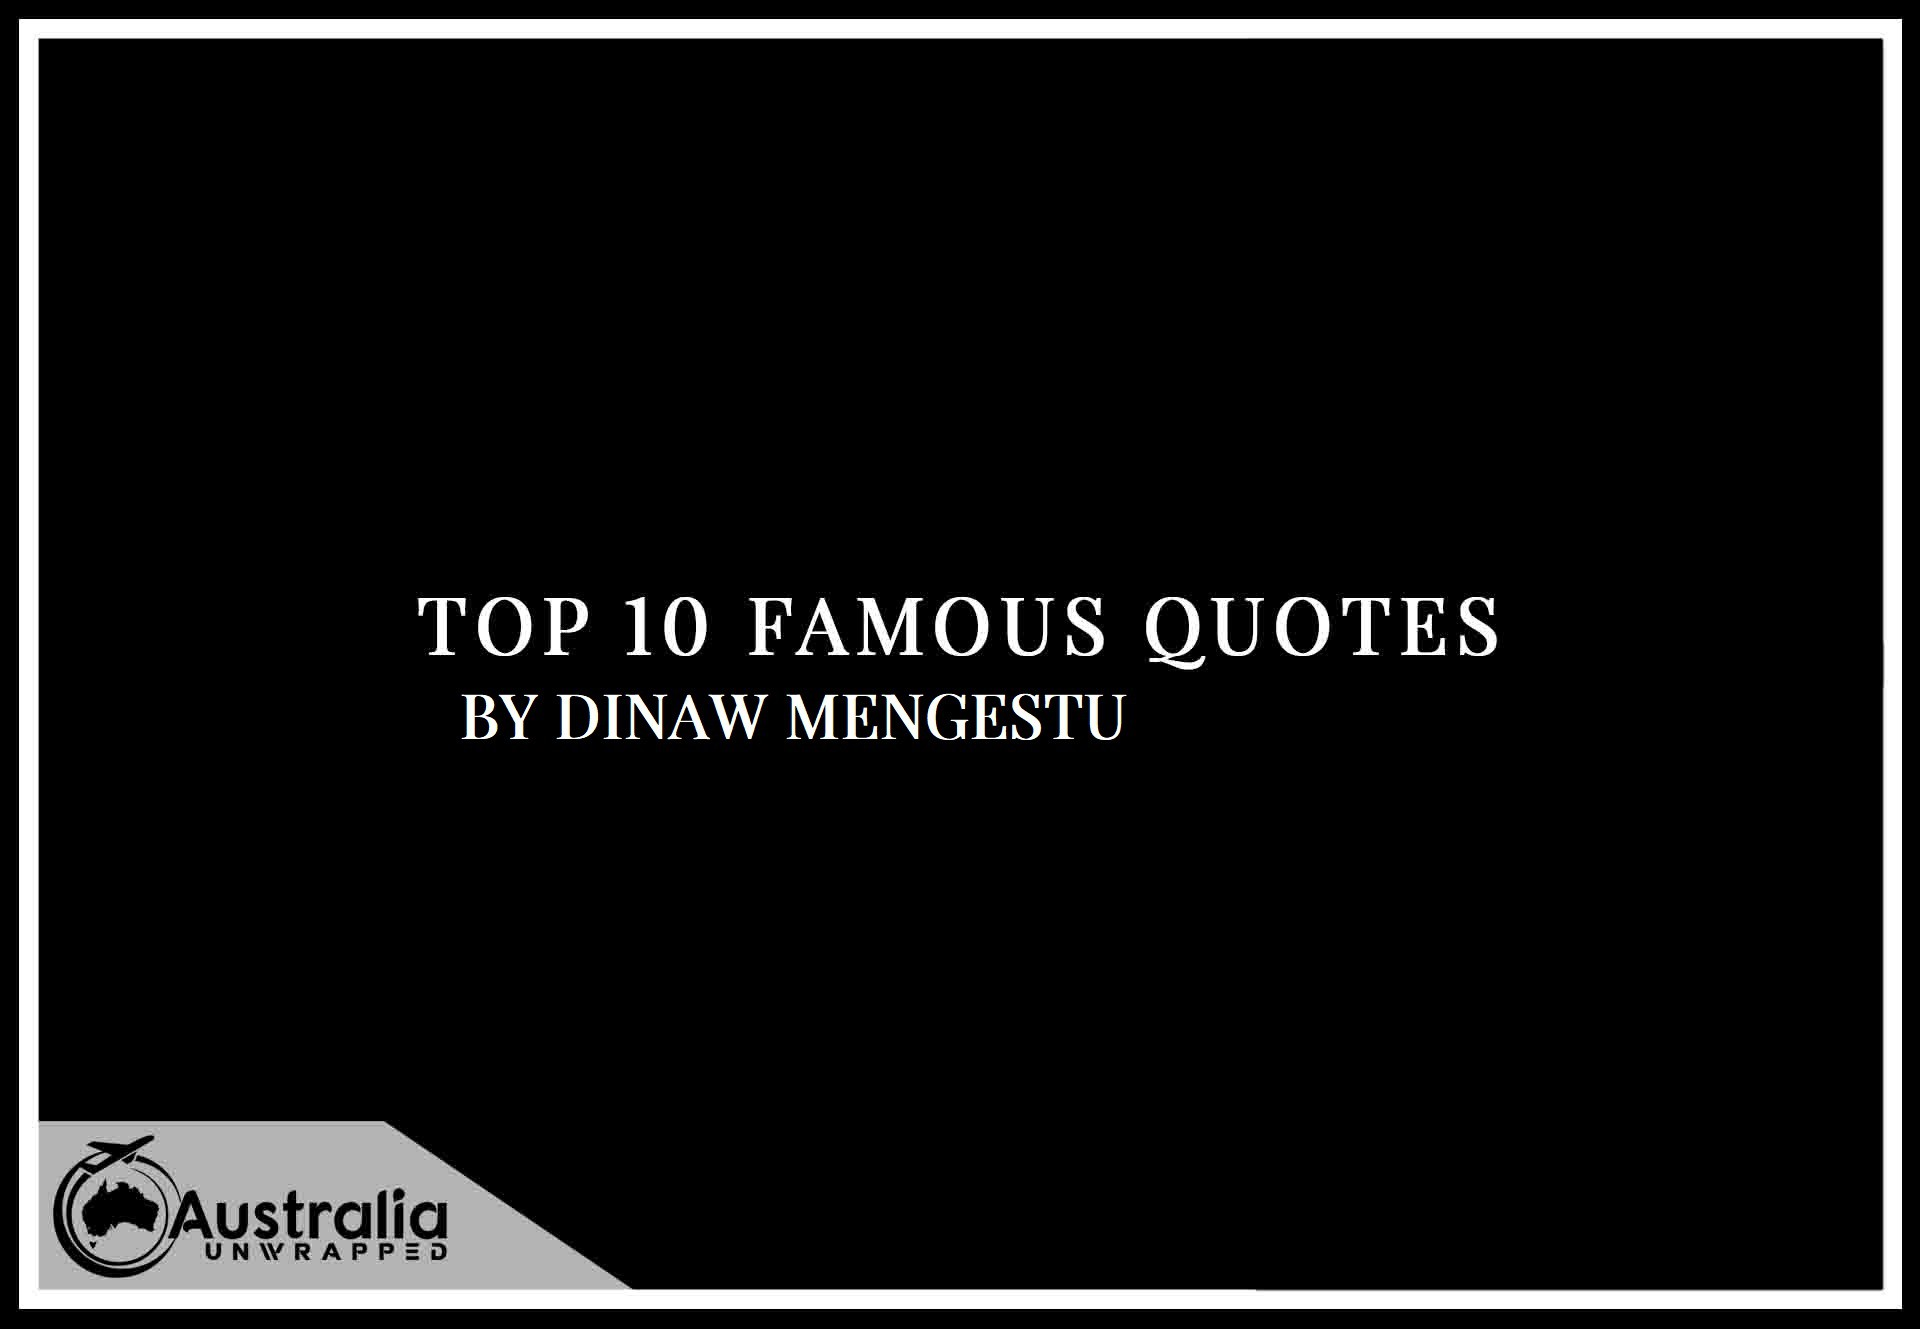 Top 10 Famous Quotes by Author Dinaw Mengestu